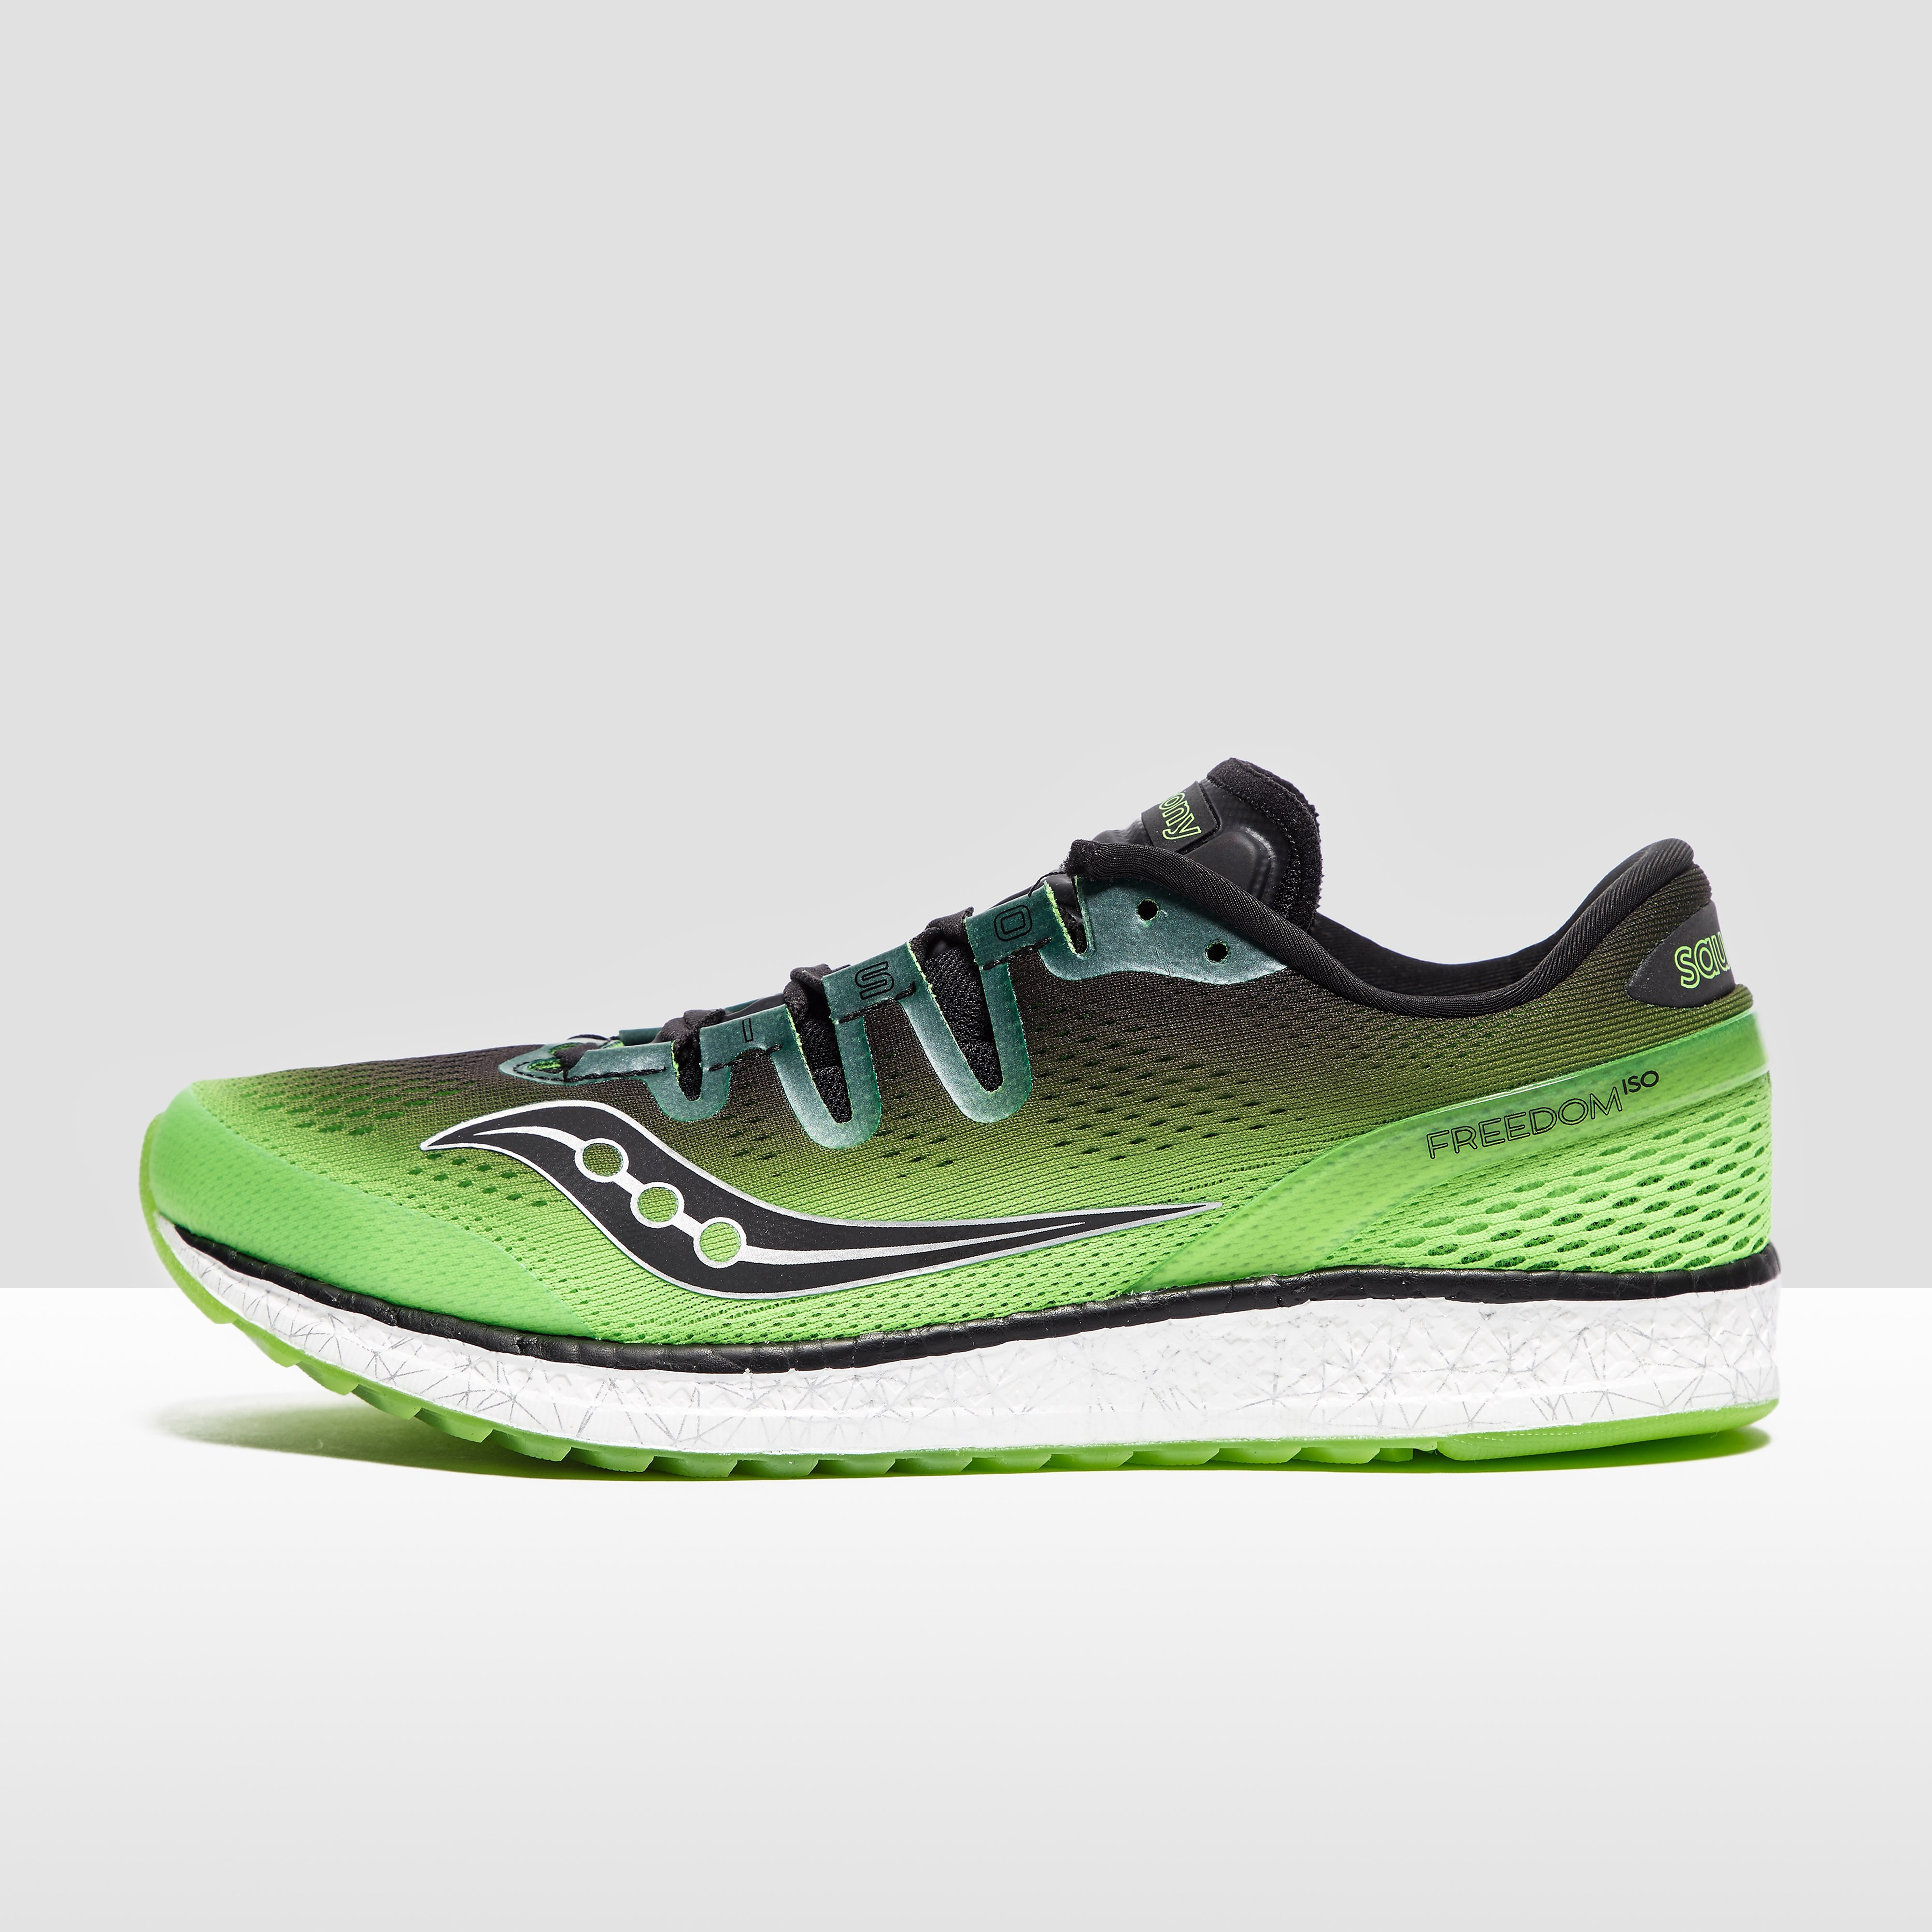 Saucony Freedom Iso Men's Running Shoes